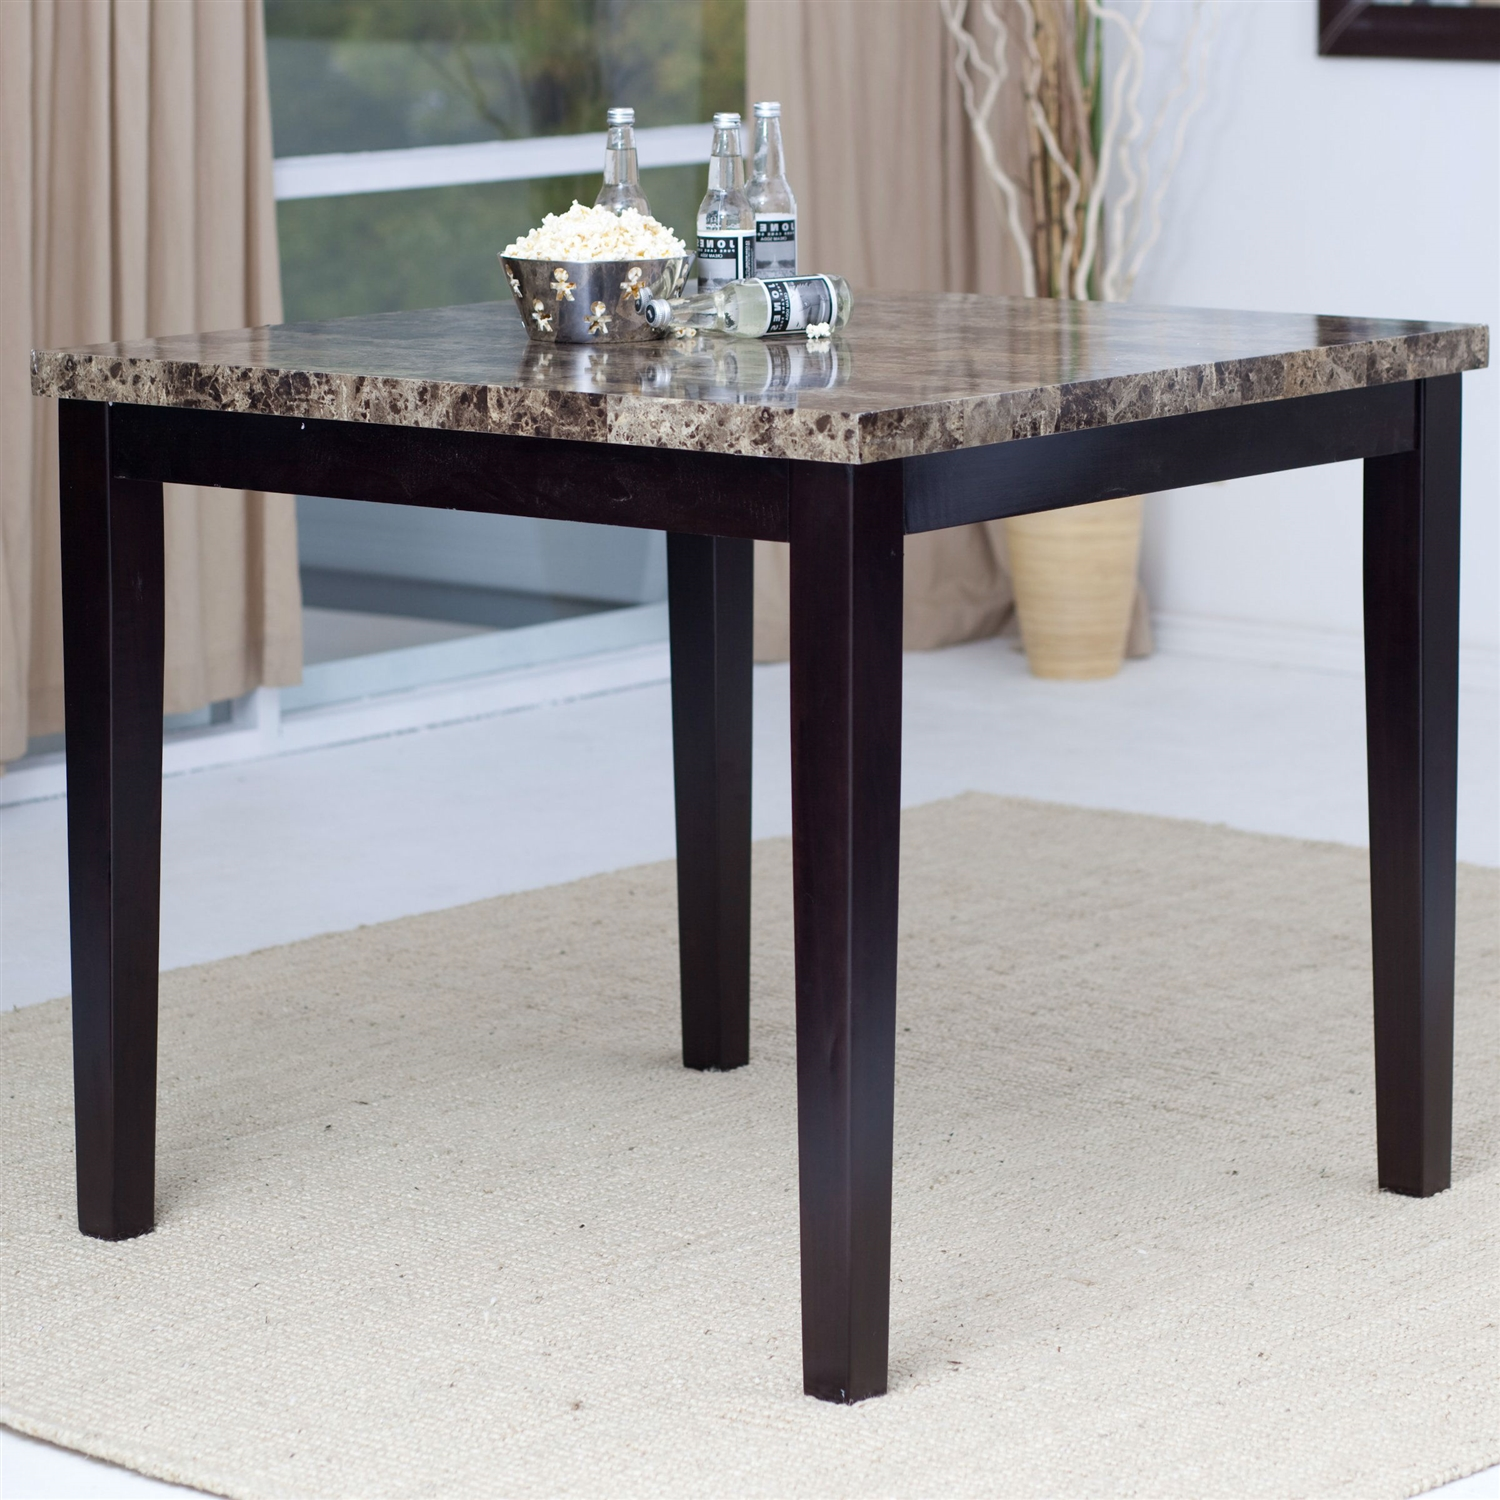 Contemporary 42 X Inch Counter Height Dining Table With Faux Marble Top Fastfurnishings